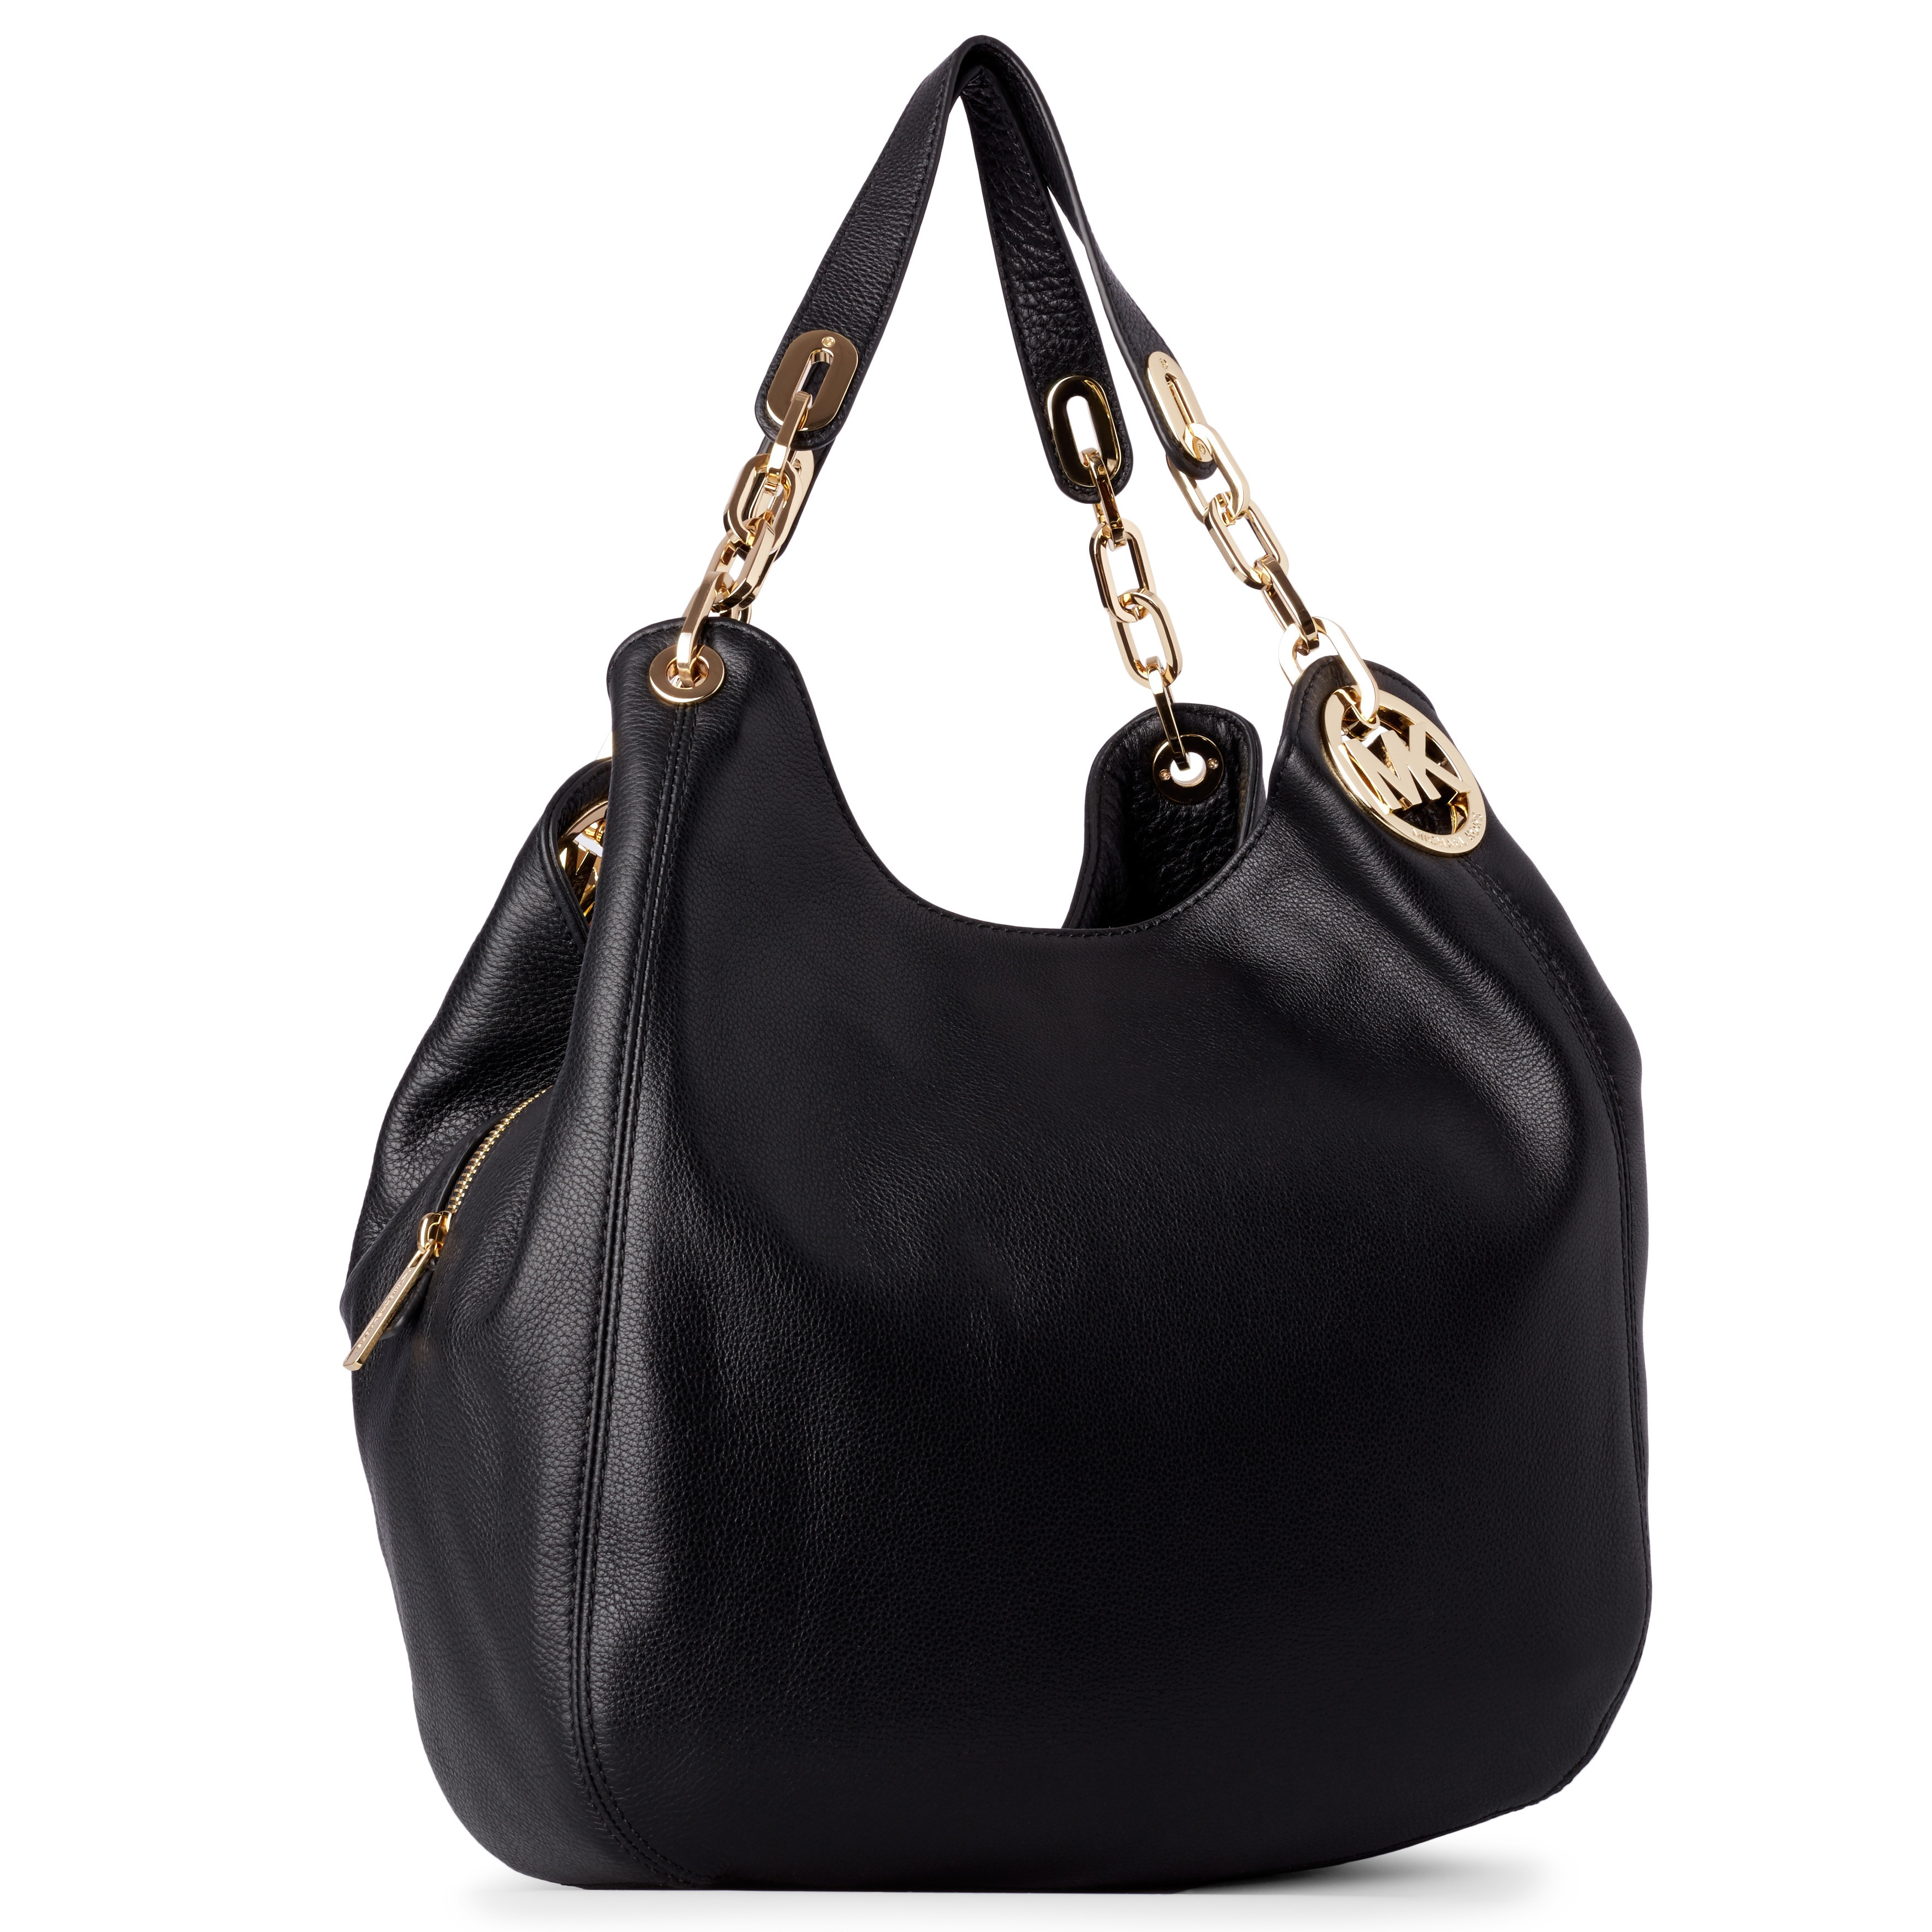 2655c47df1f2 Top Product Reviews for Michael Kors Fulton Leather Large Shoulder ...